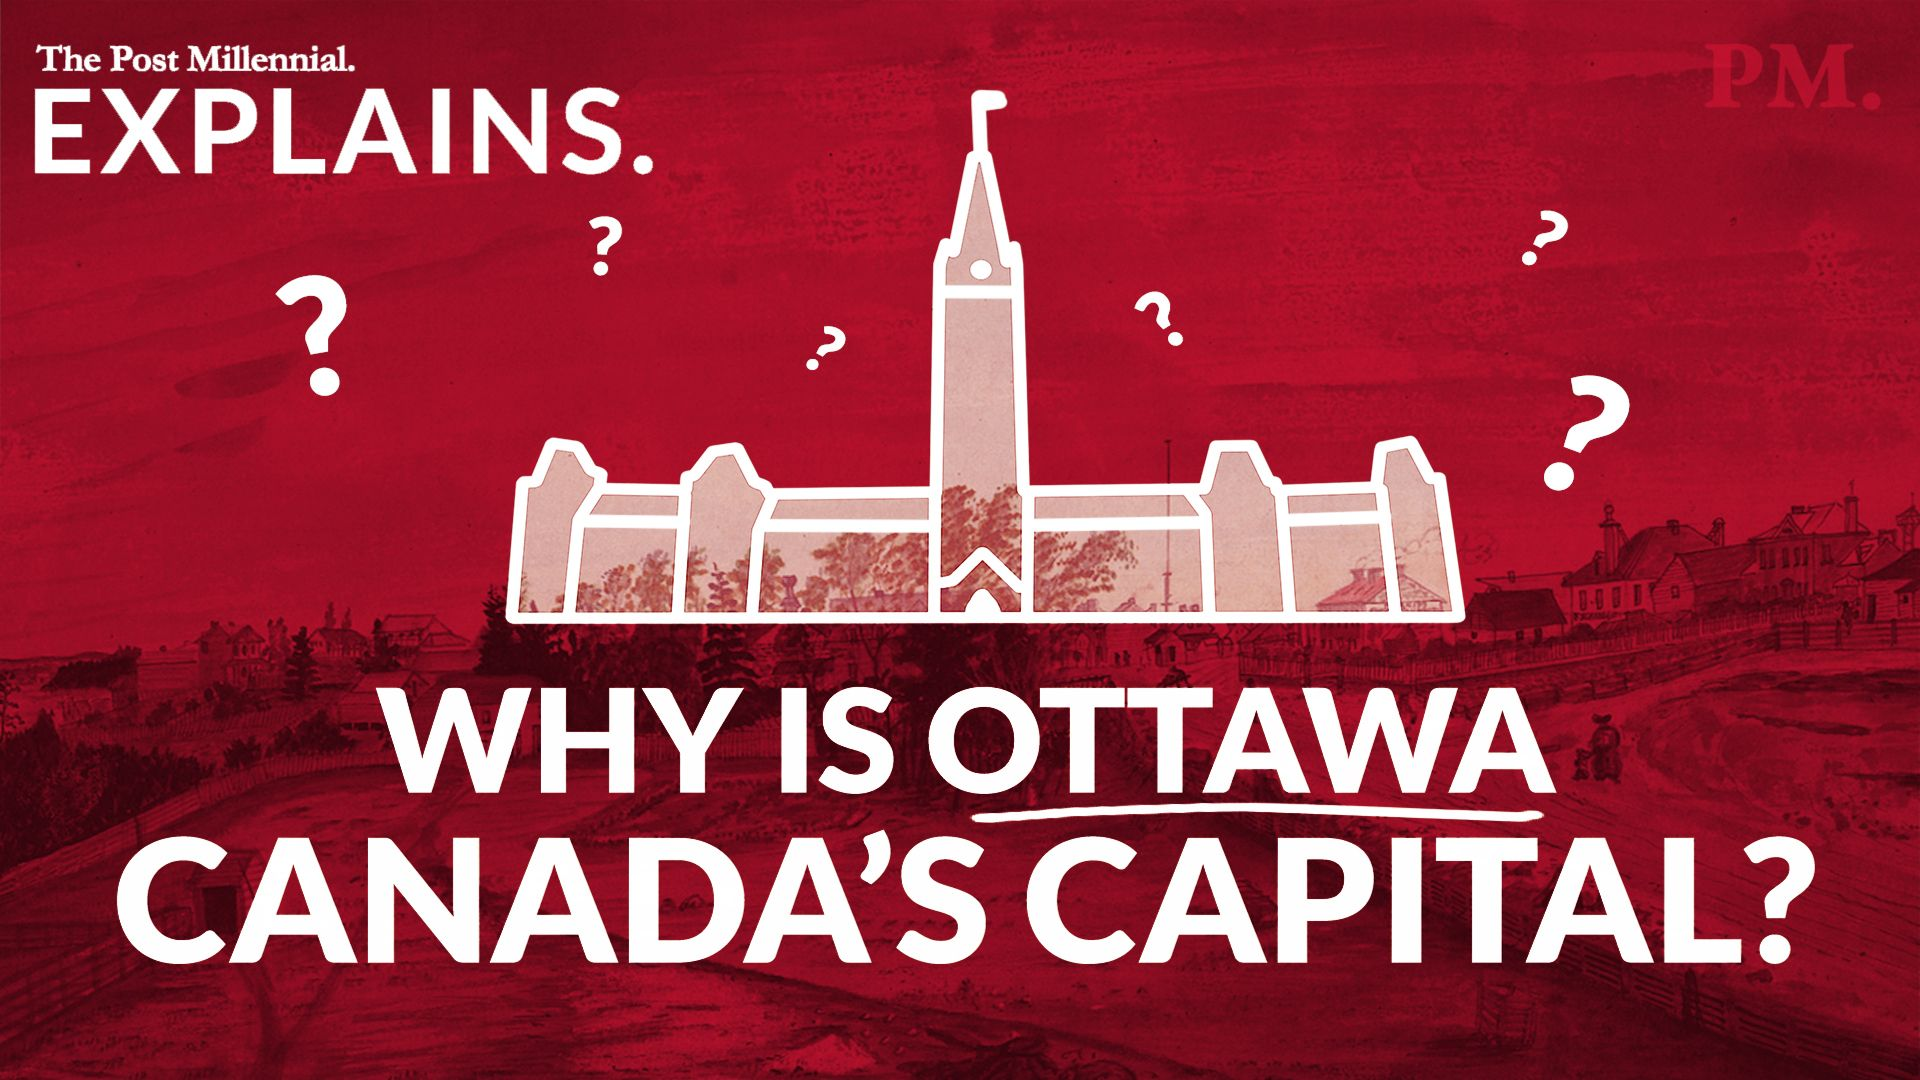 Canada Explained: why is Ottawa Canada's Capital?